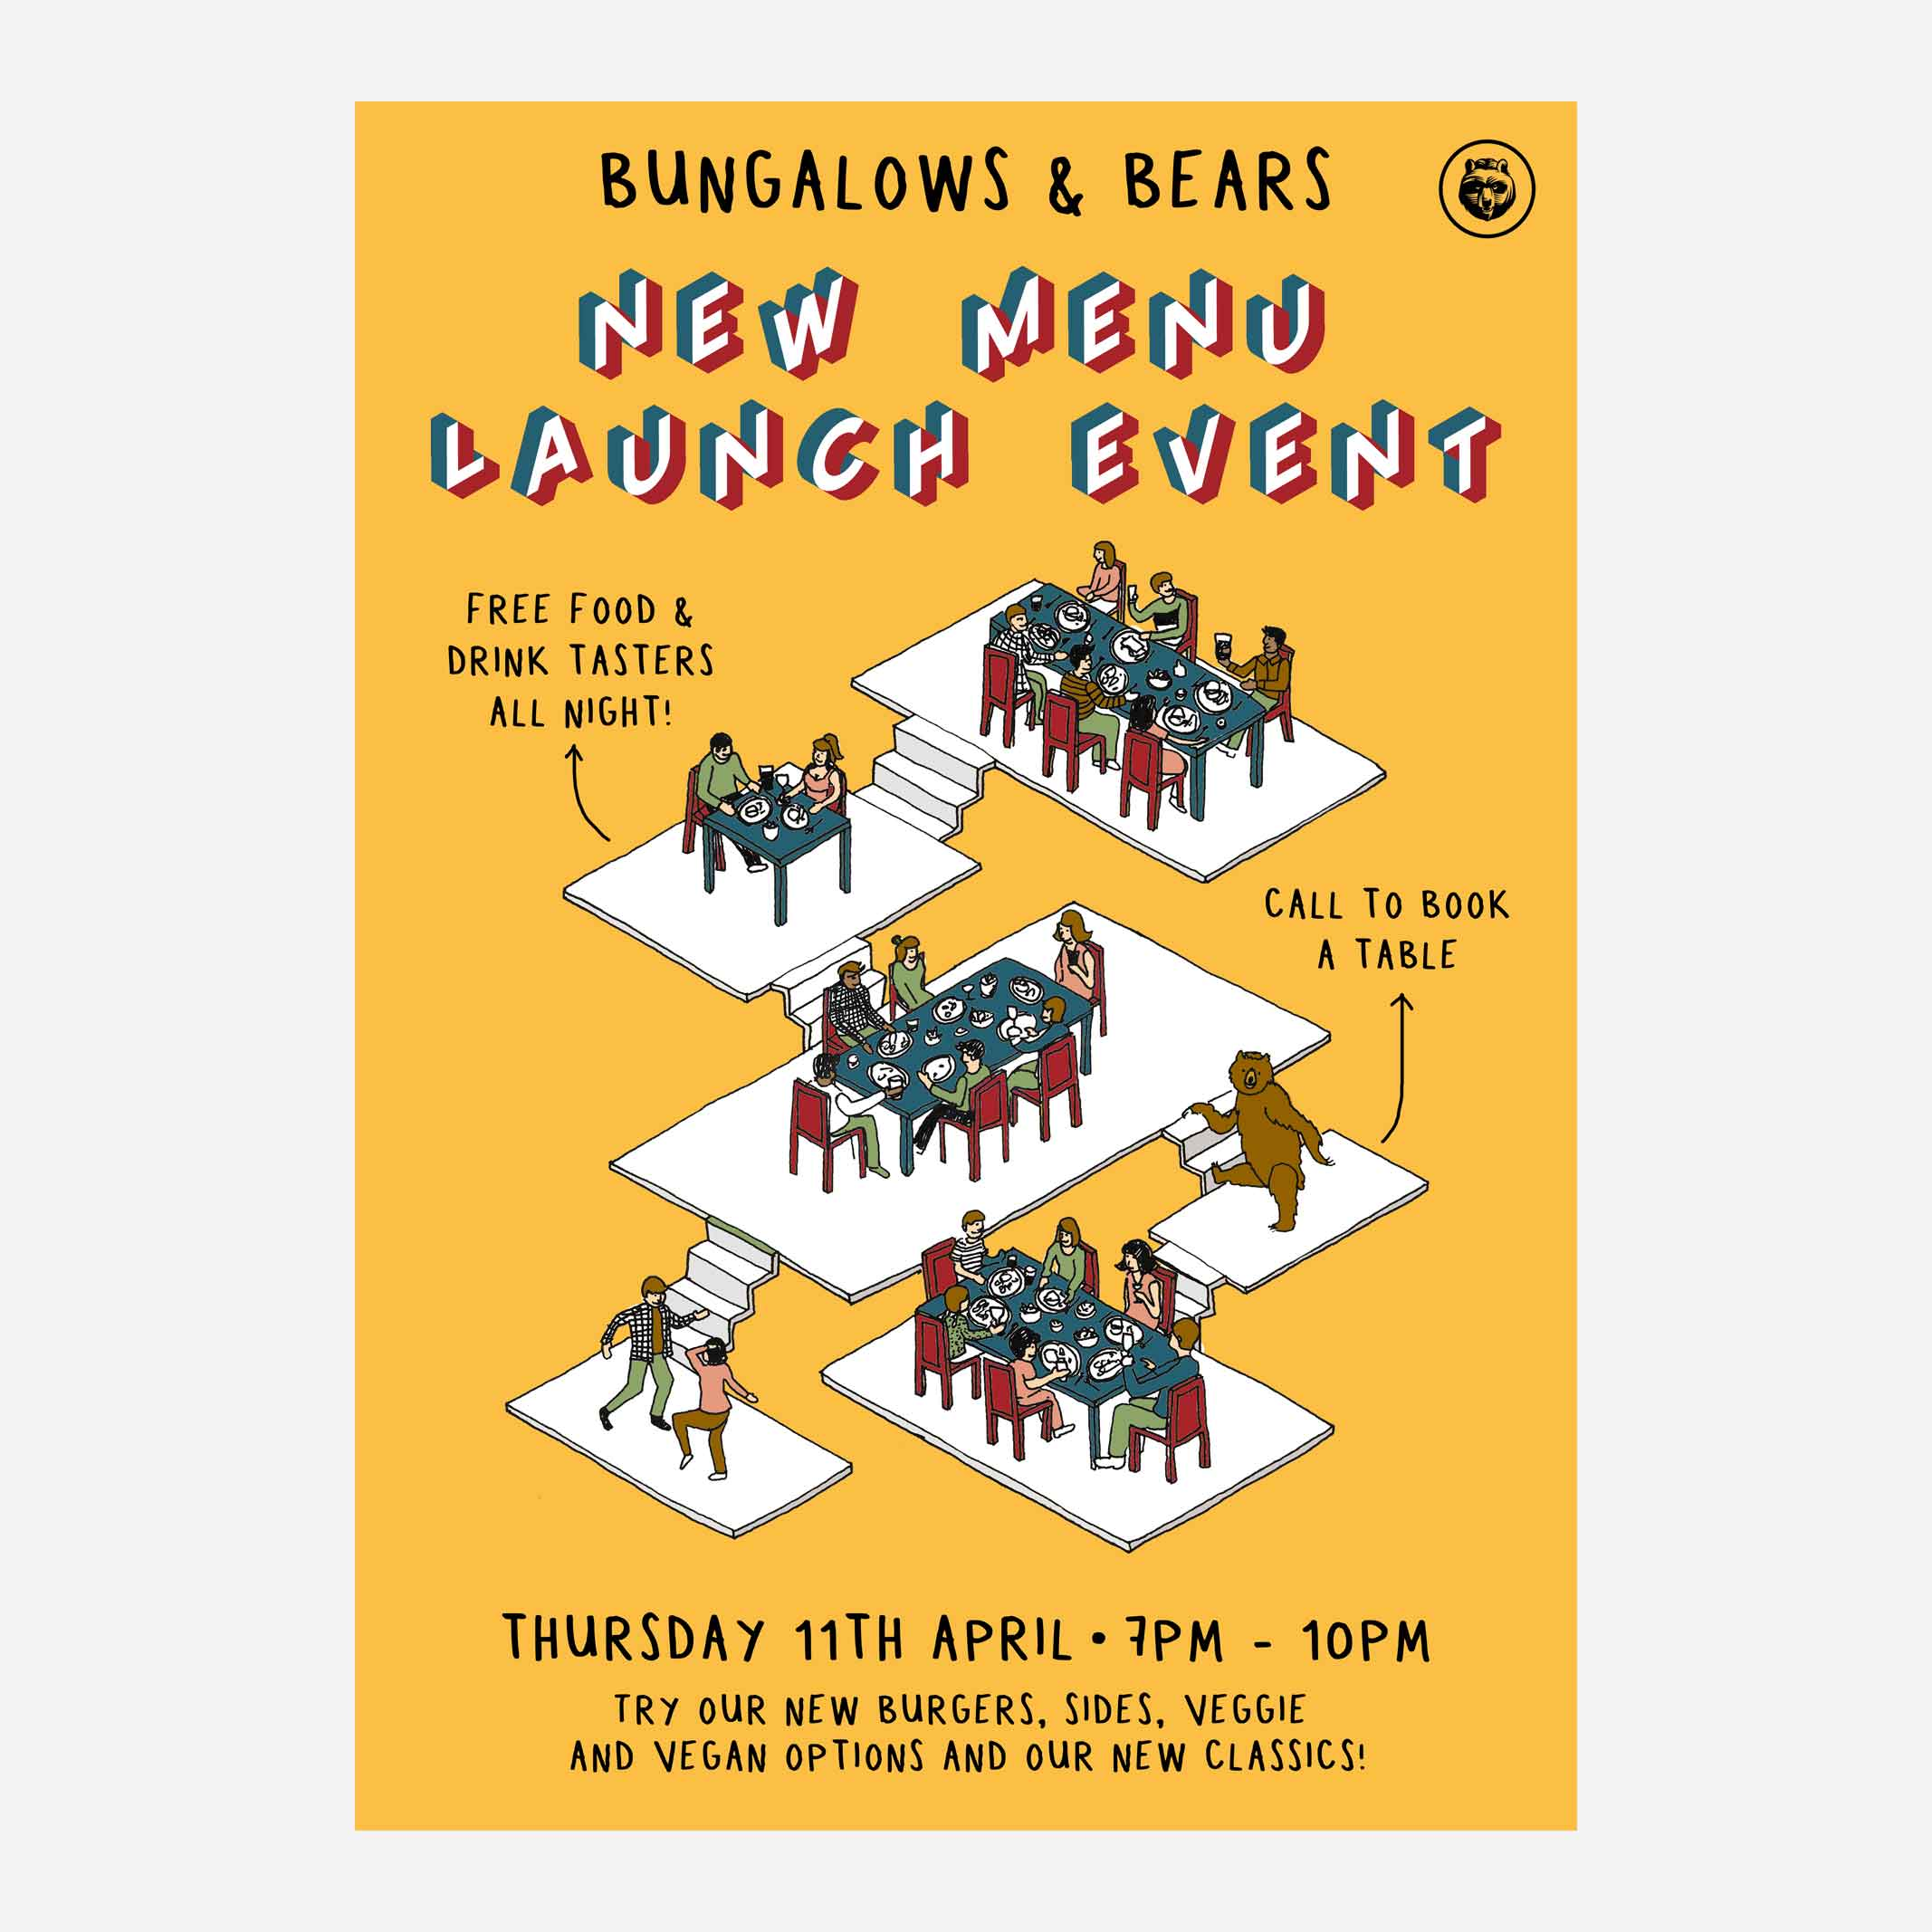 BUNGALOWS & BEARS NEW MENU